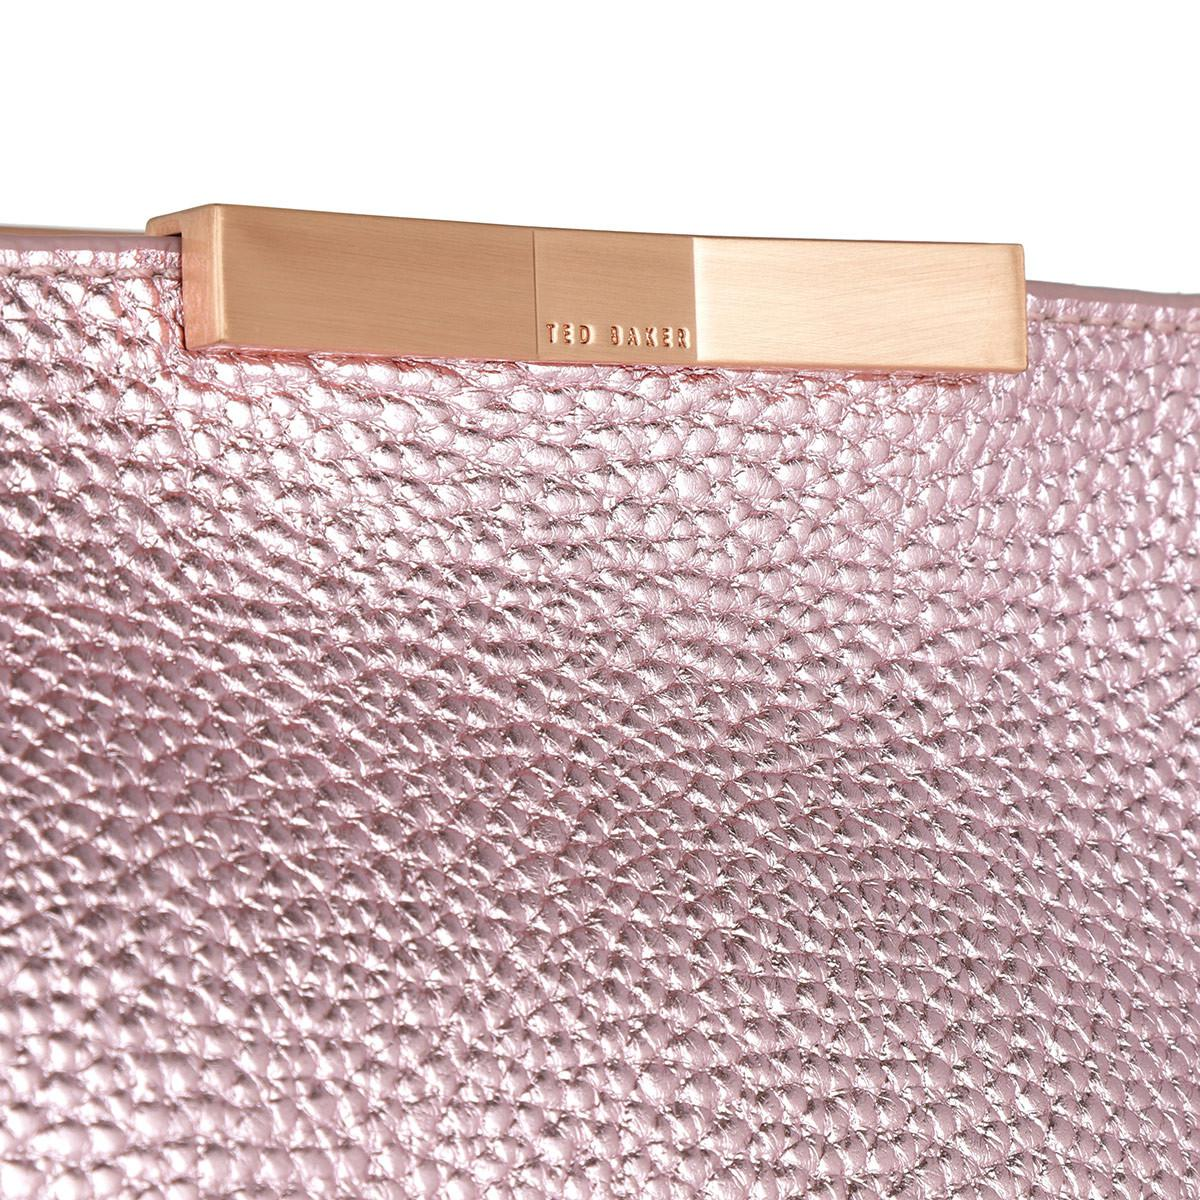 4ee7309191 Ted Baker Criesia Metallic Soft Grain Shopper Light Pink in Pink - Lyst